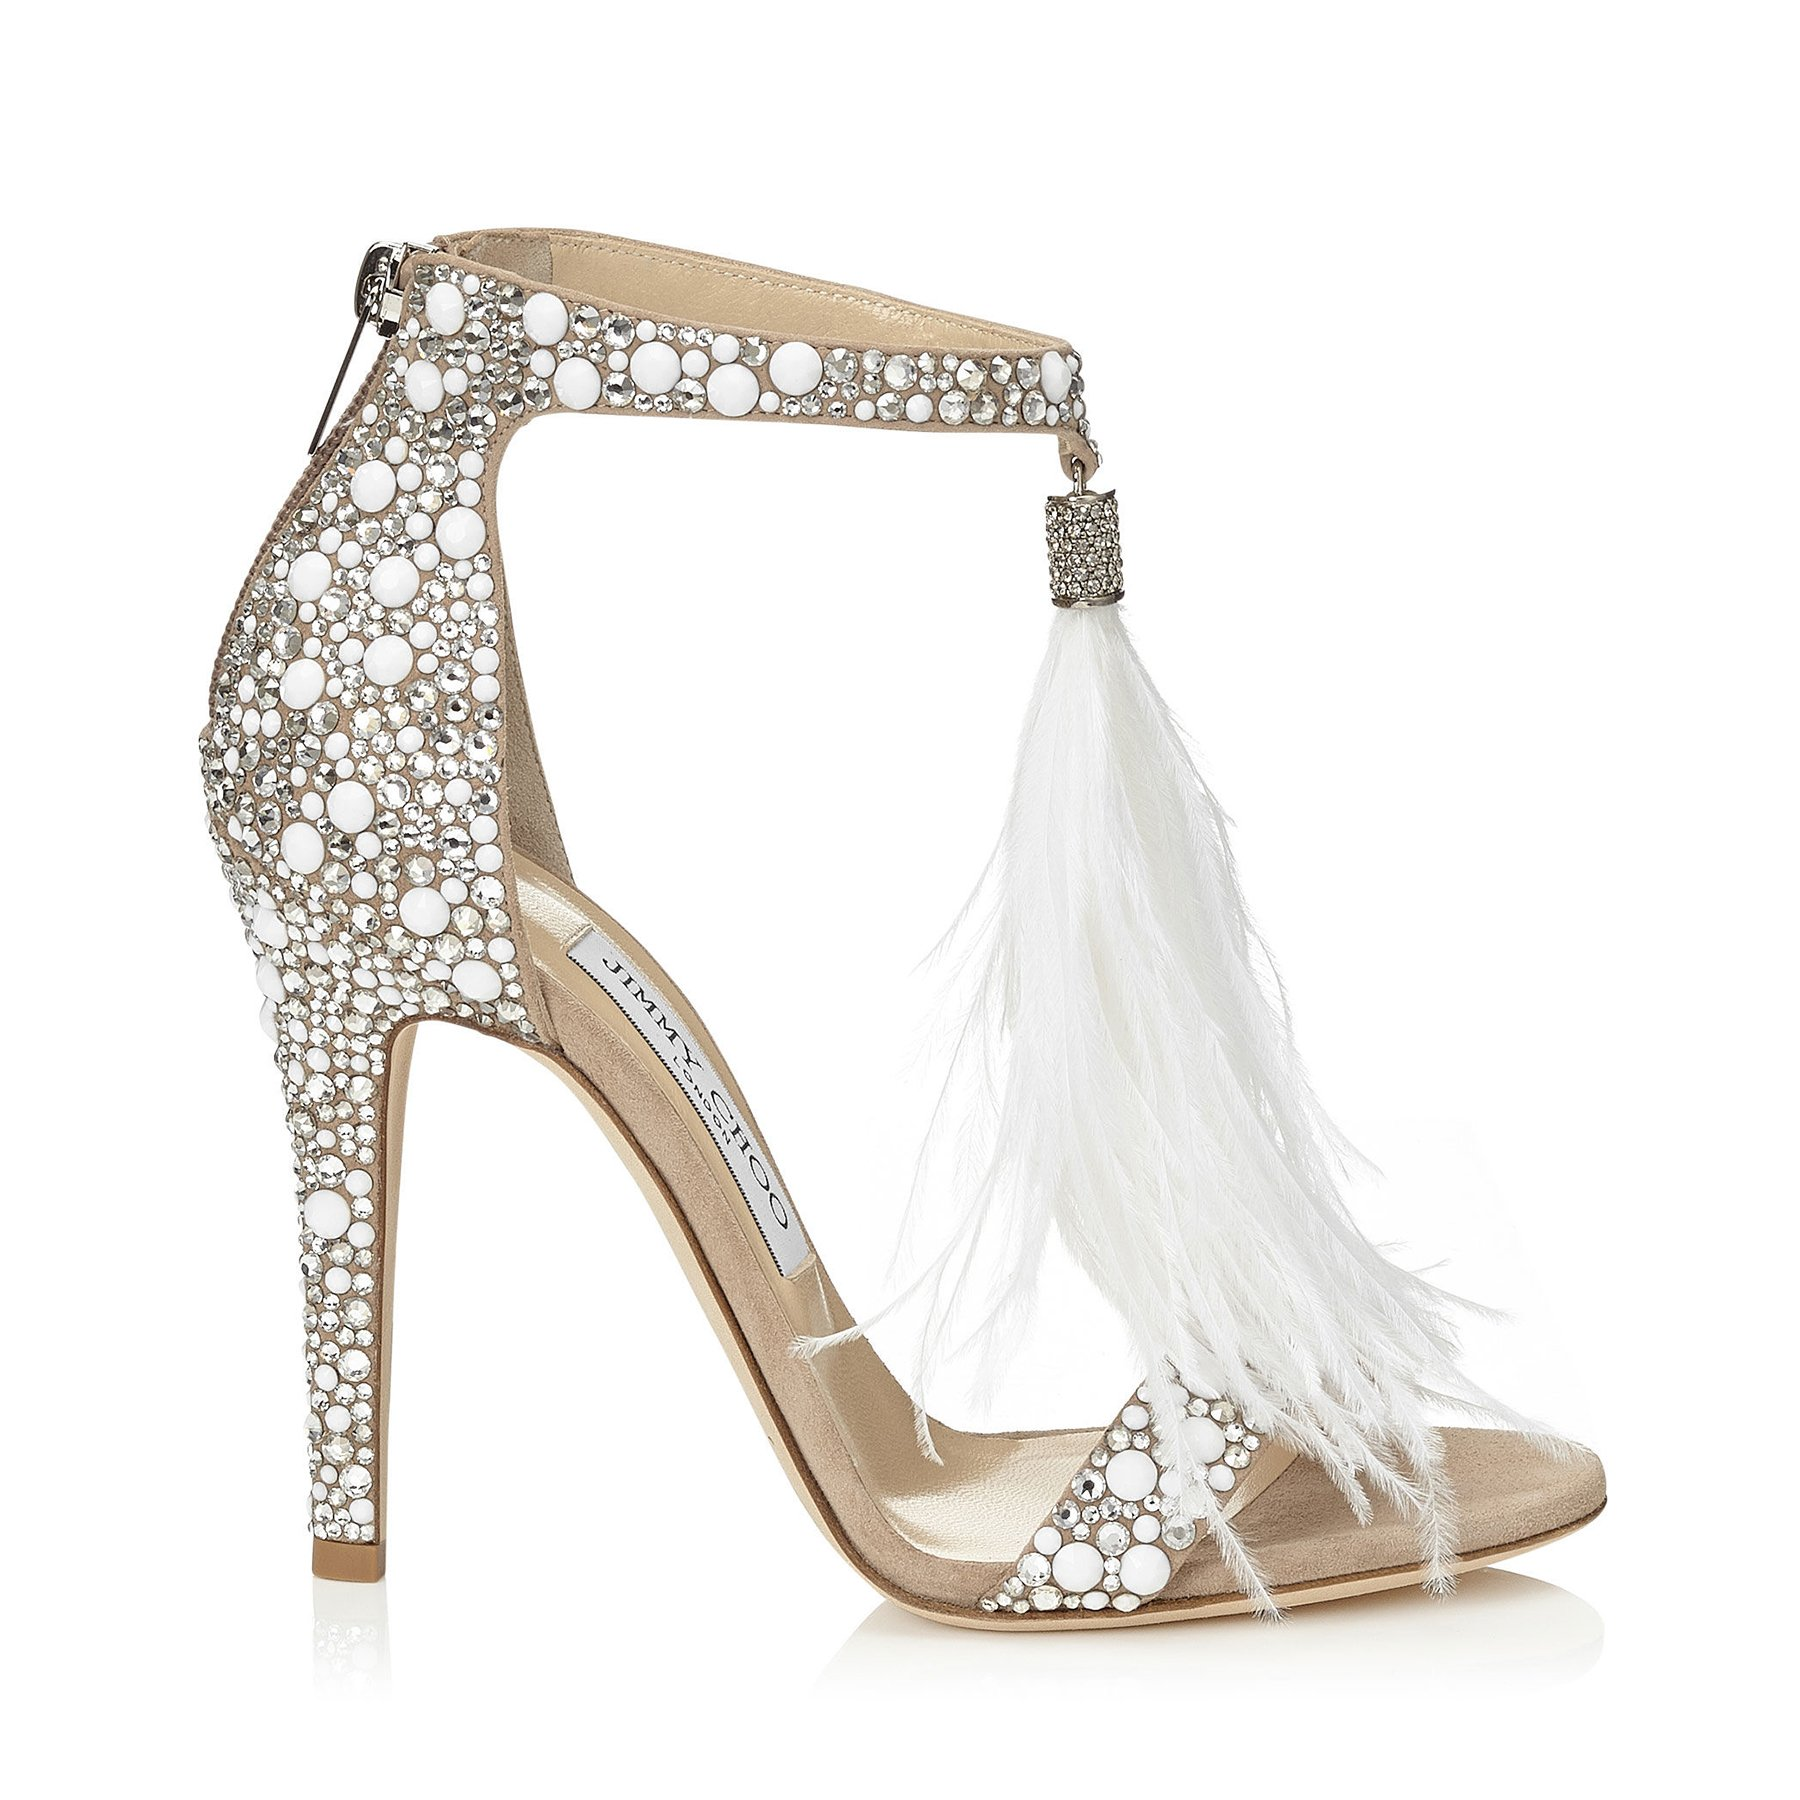 68615fb0cf3 White Suede and Hot Fix Crystal Embellished Sandals with an Ostrich Feather  Tassel